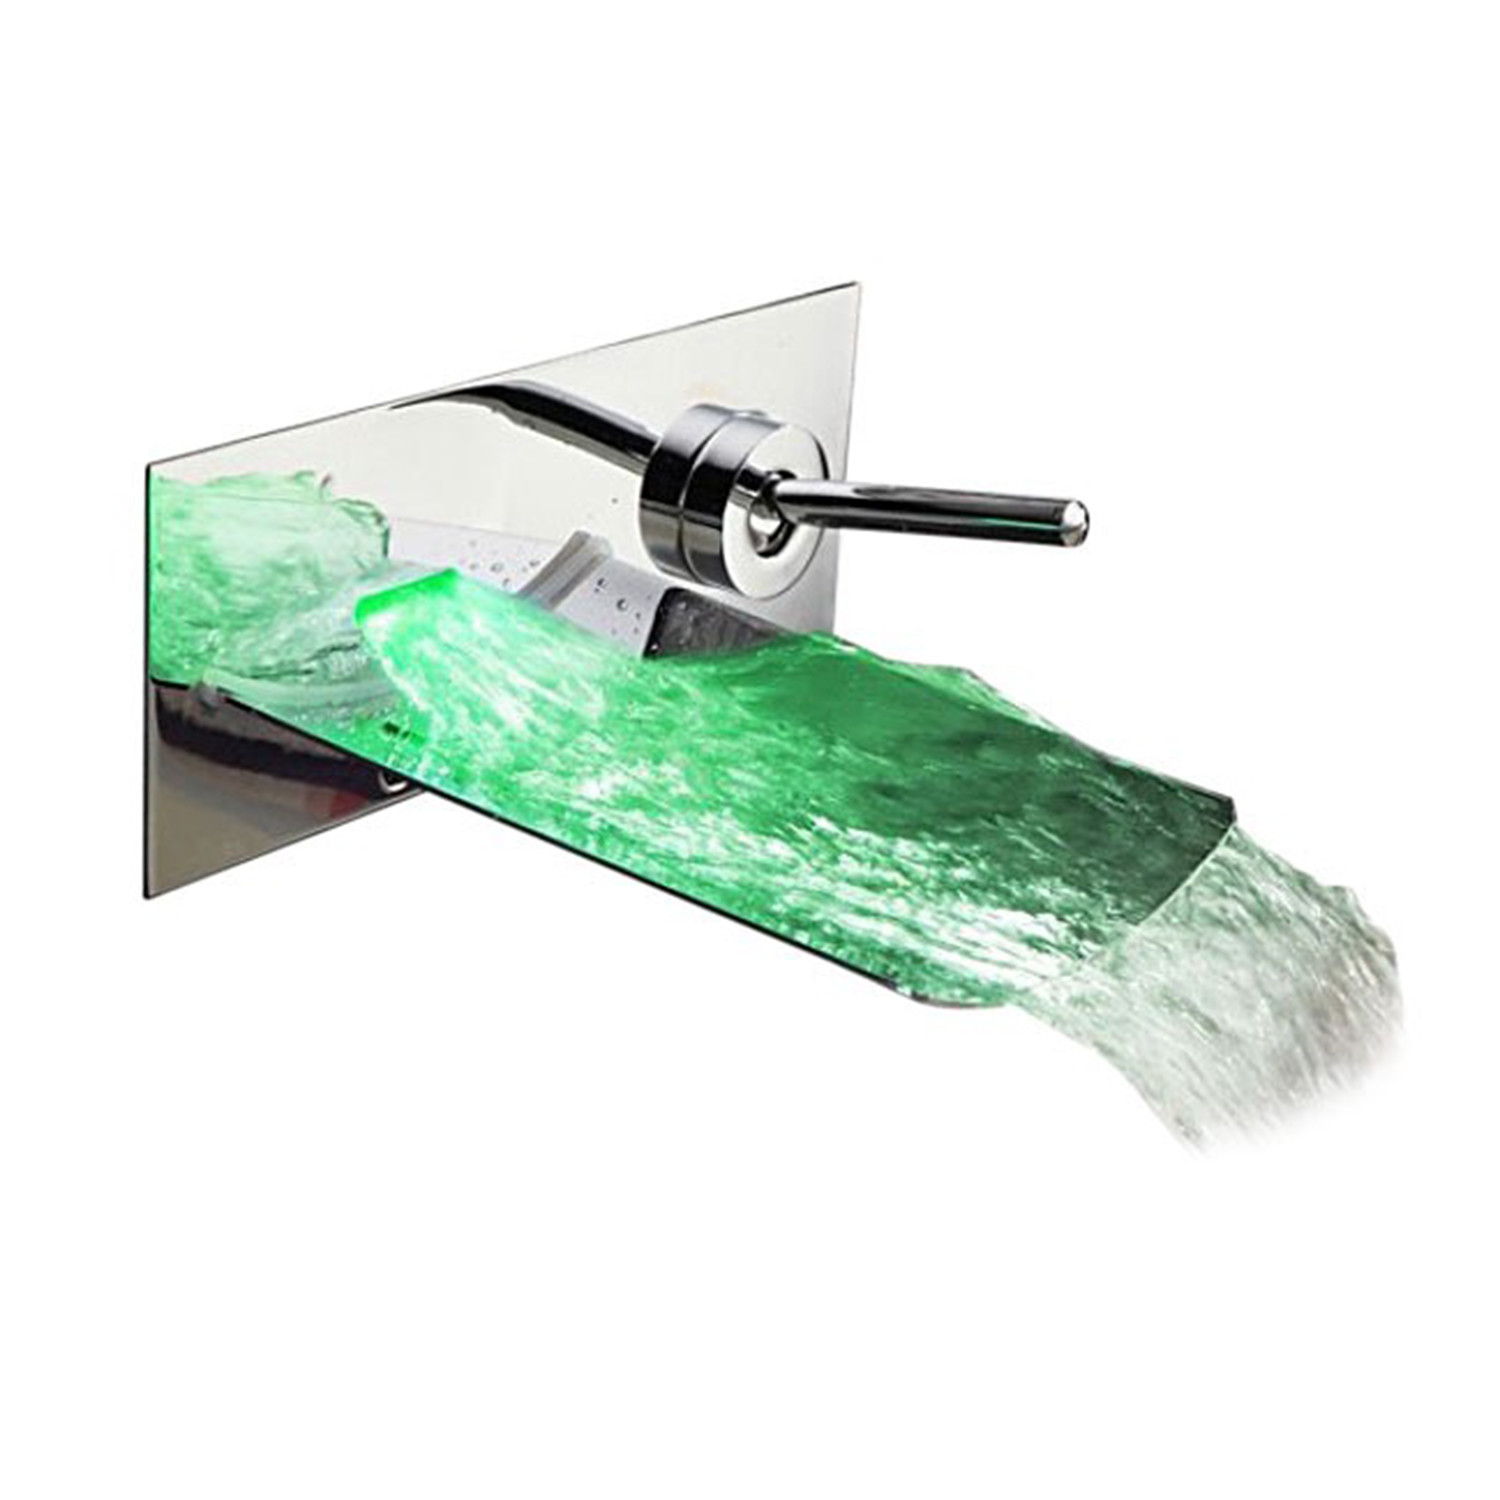 Contemporary Bathroom Sink Faucet - JunoShowers - Touch of Modern